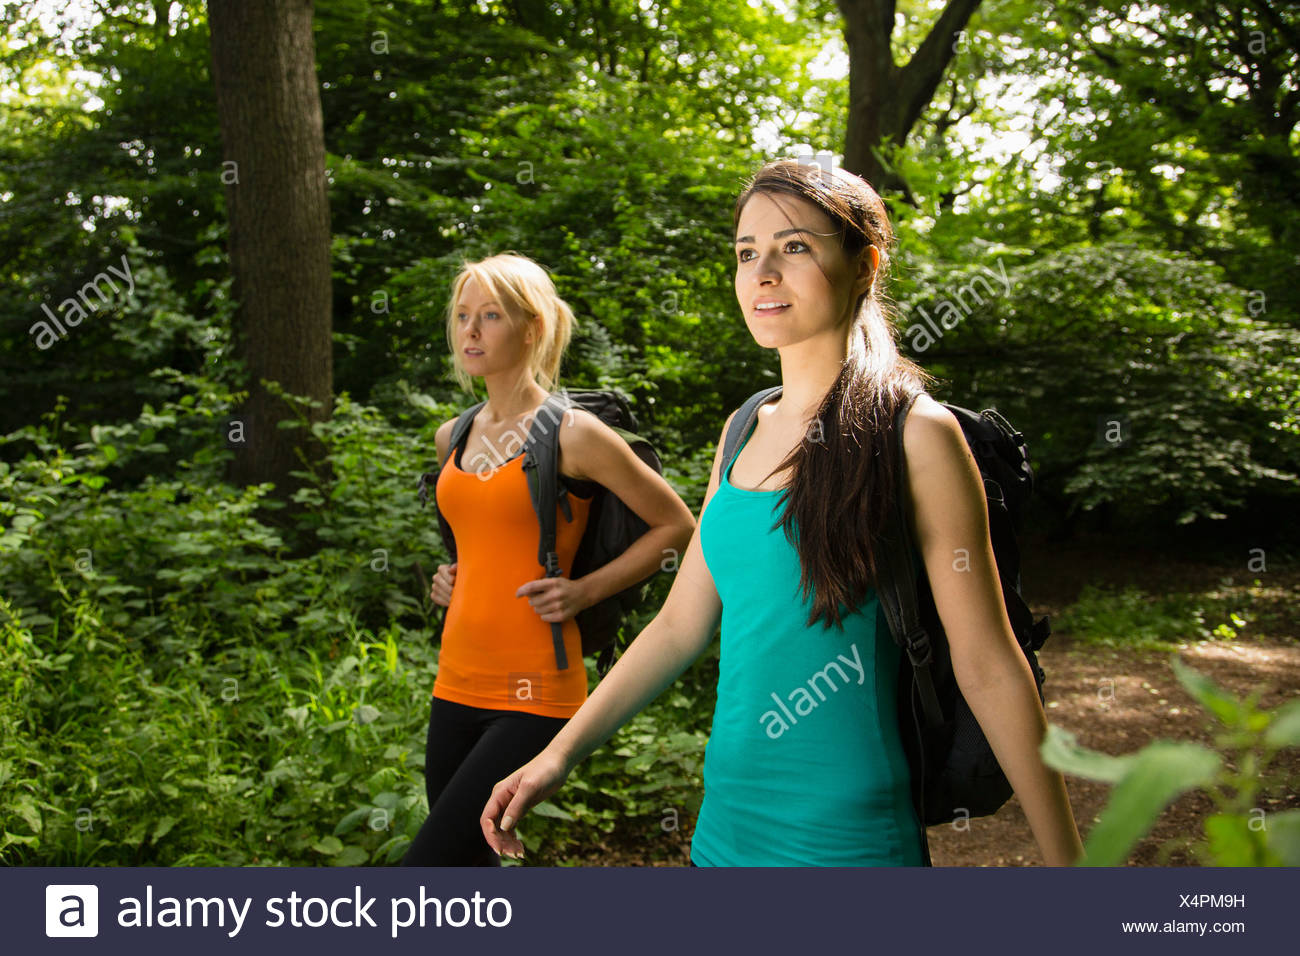 Women out walking in forest - Stock Image